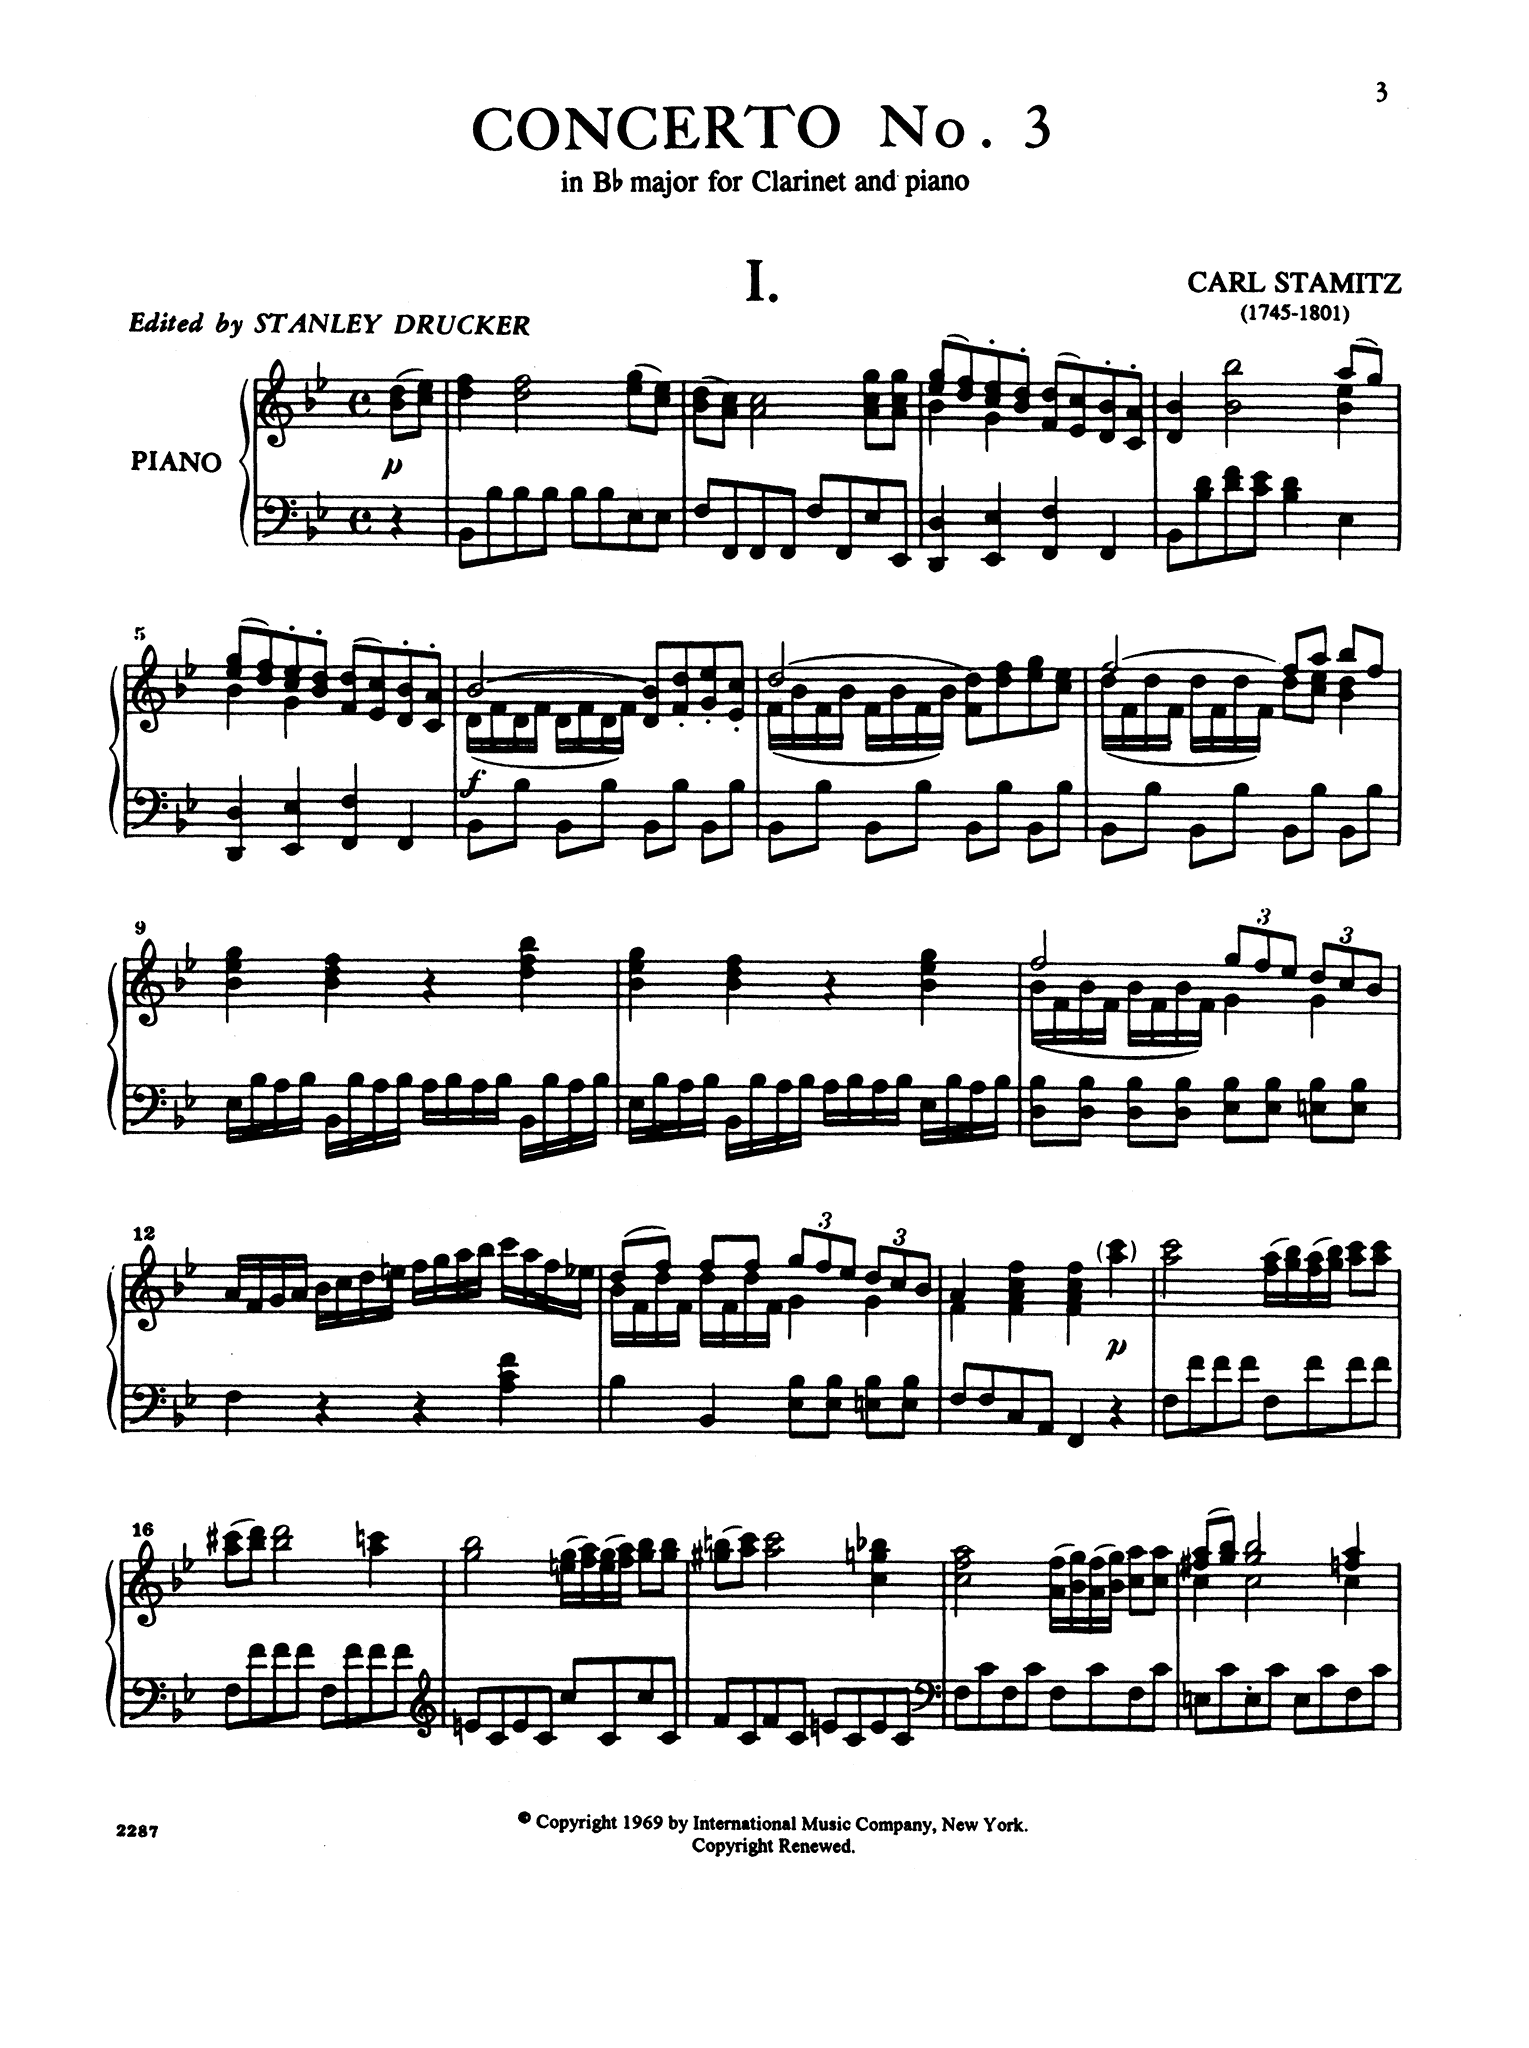 Clarinet Concerto No. 3 in B-flat Major - Movement 1